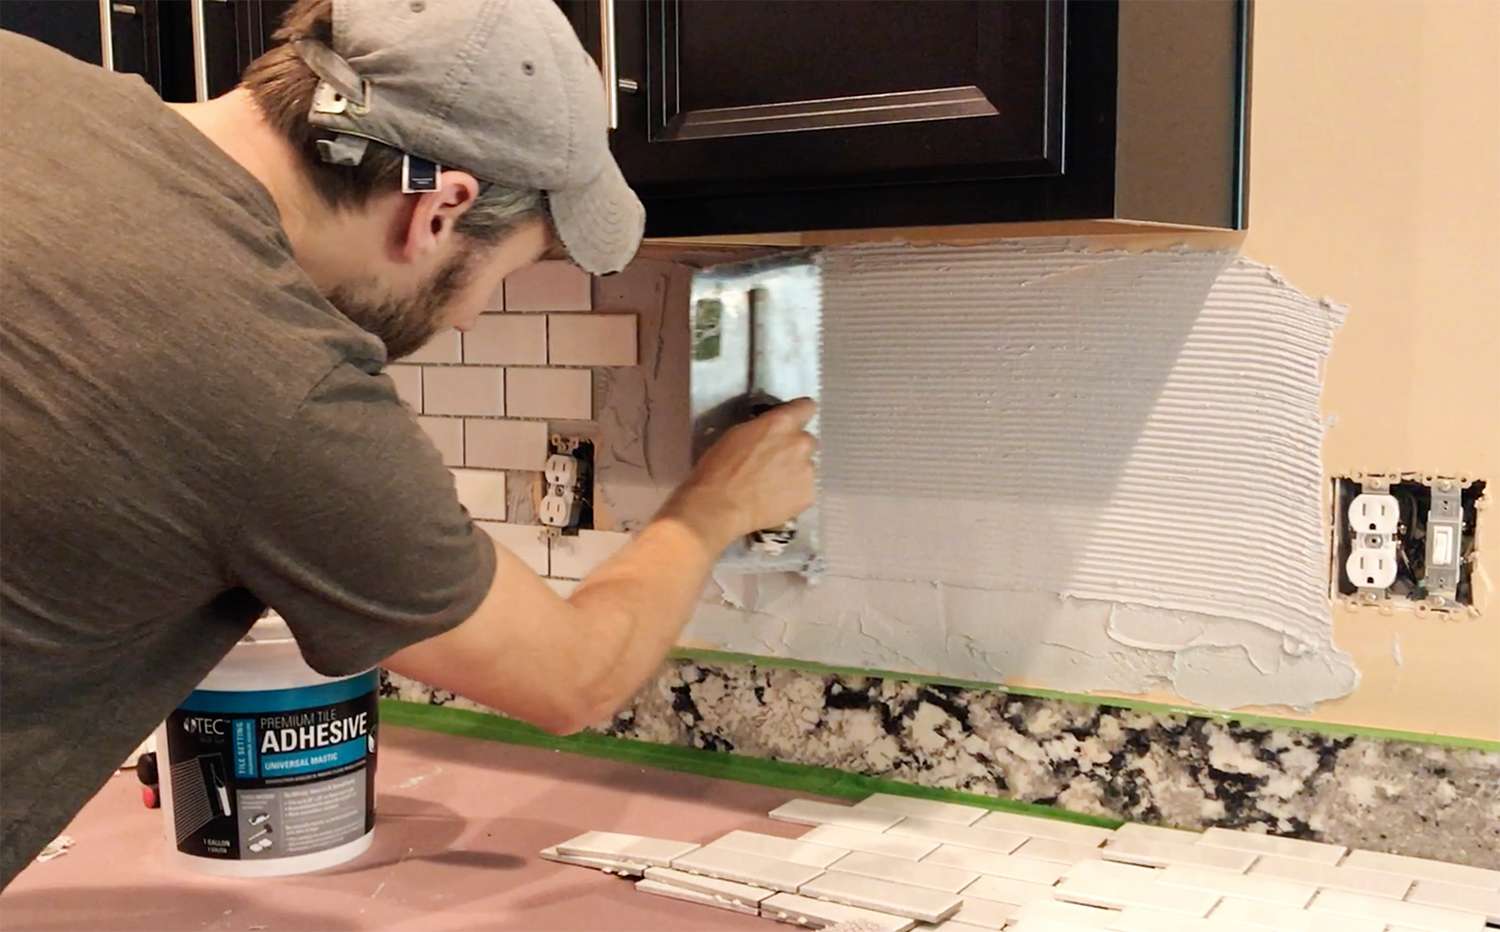 Backsplash-tiling-how-to-prep-install-cut-grout-and-caulk-tile-for-an-awesome-kitchen-back-wallpaper-wp4003226-1